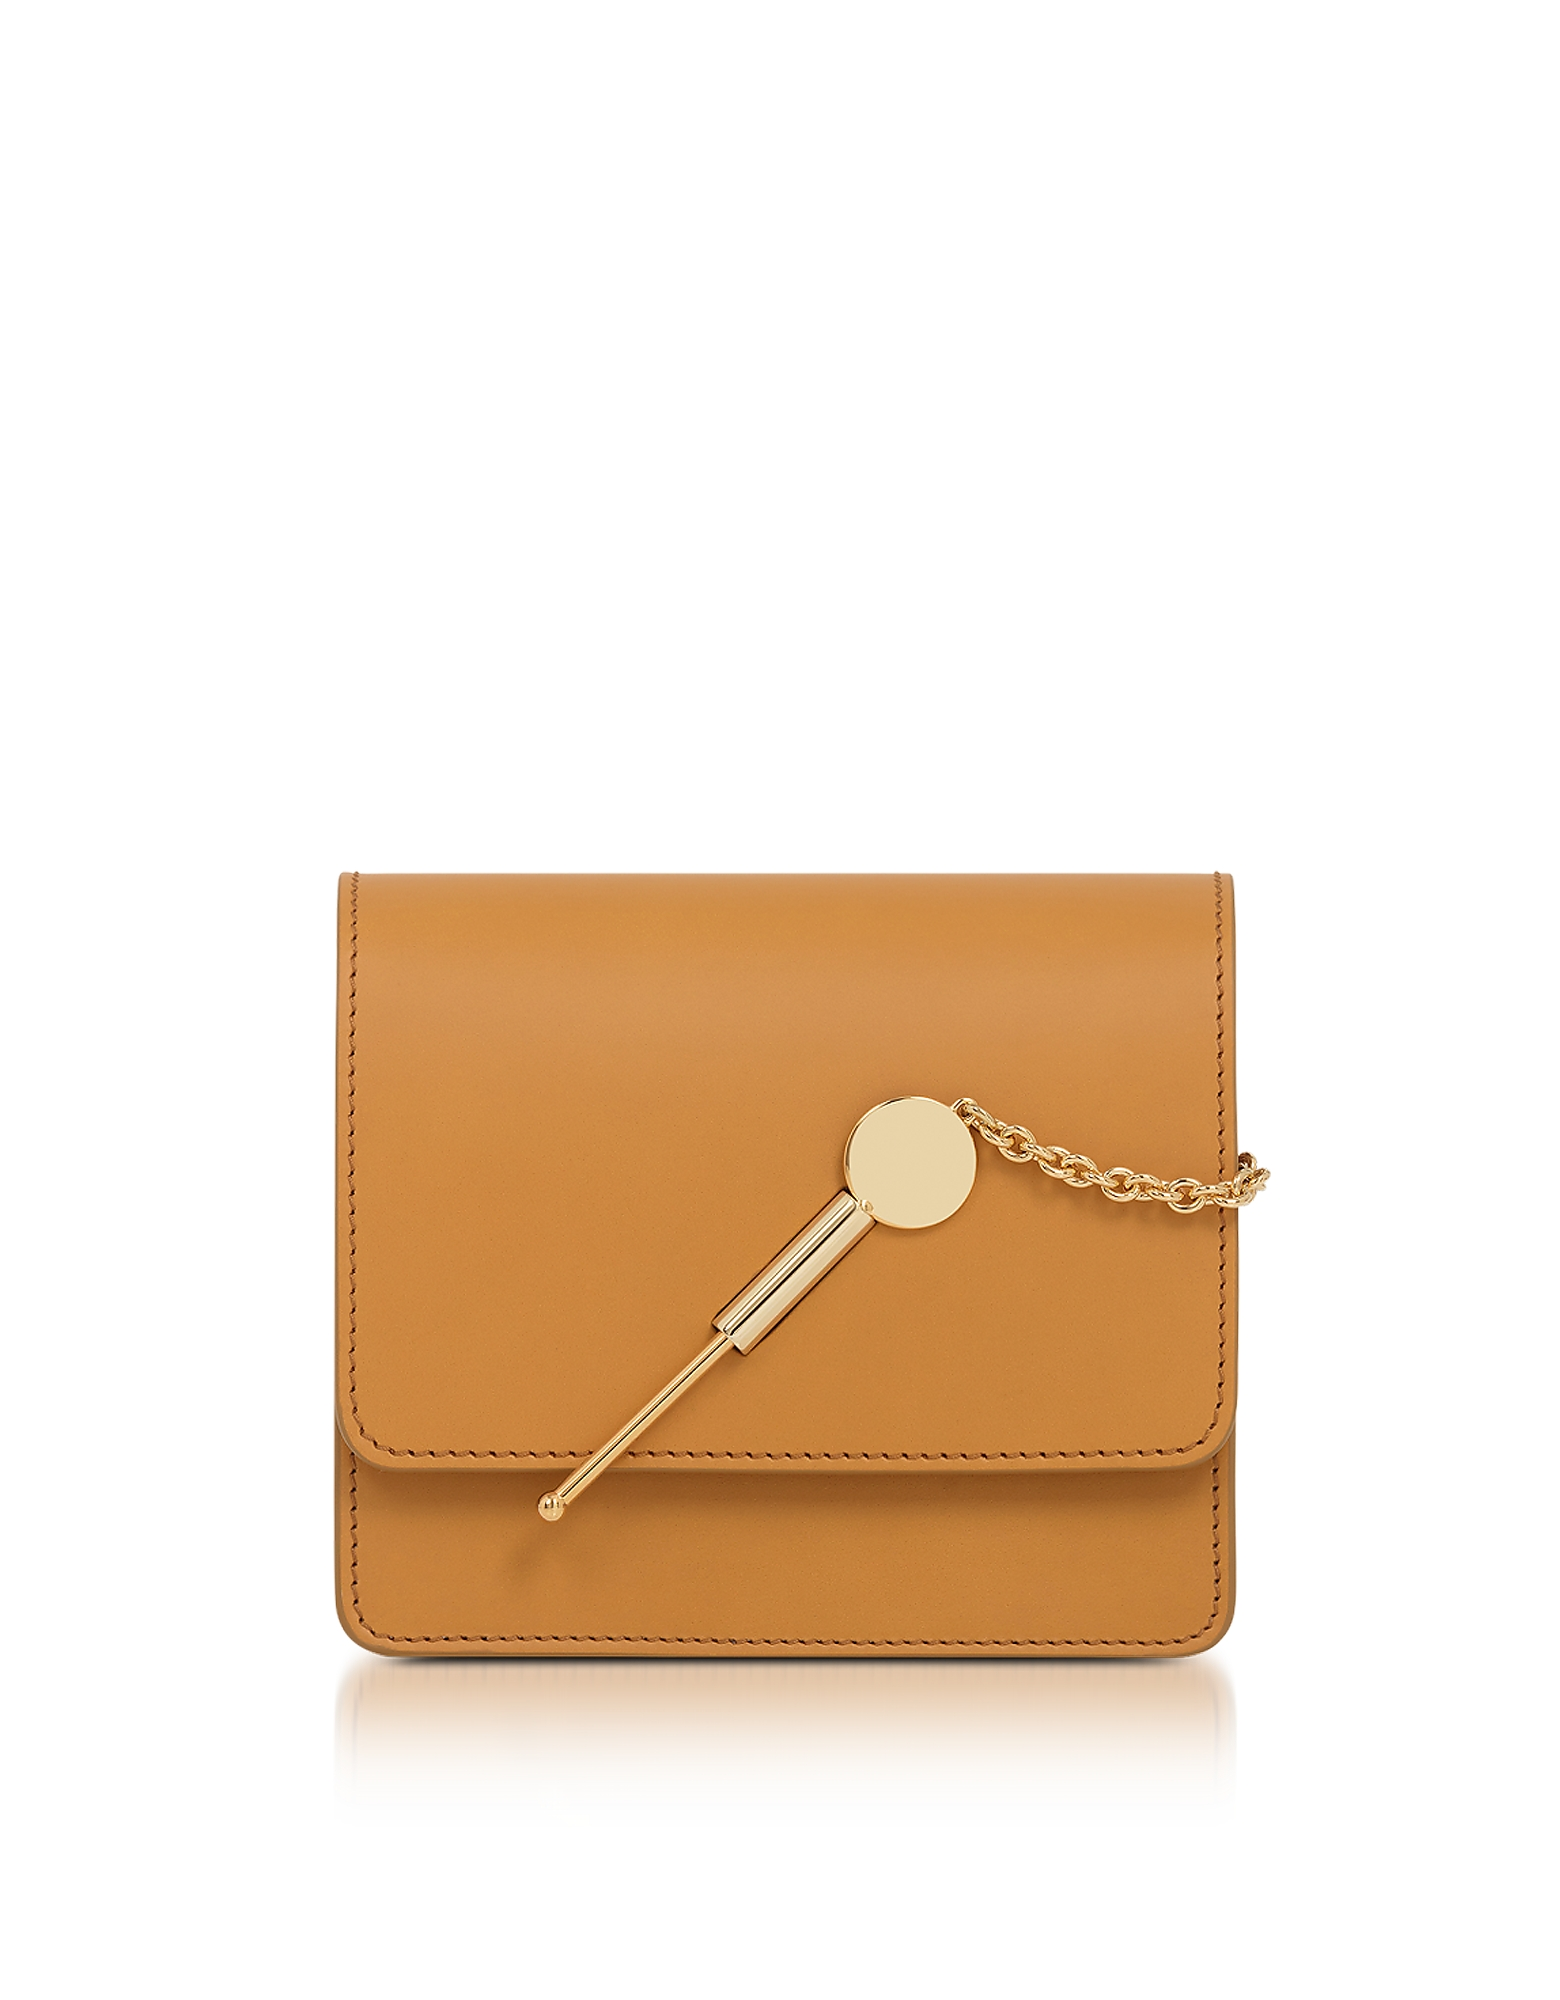 Sophie Hulme Handbags, Dark Butter Small Cocktail Stirrer Bag